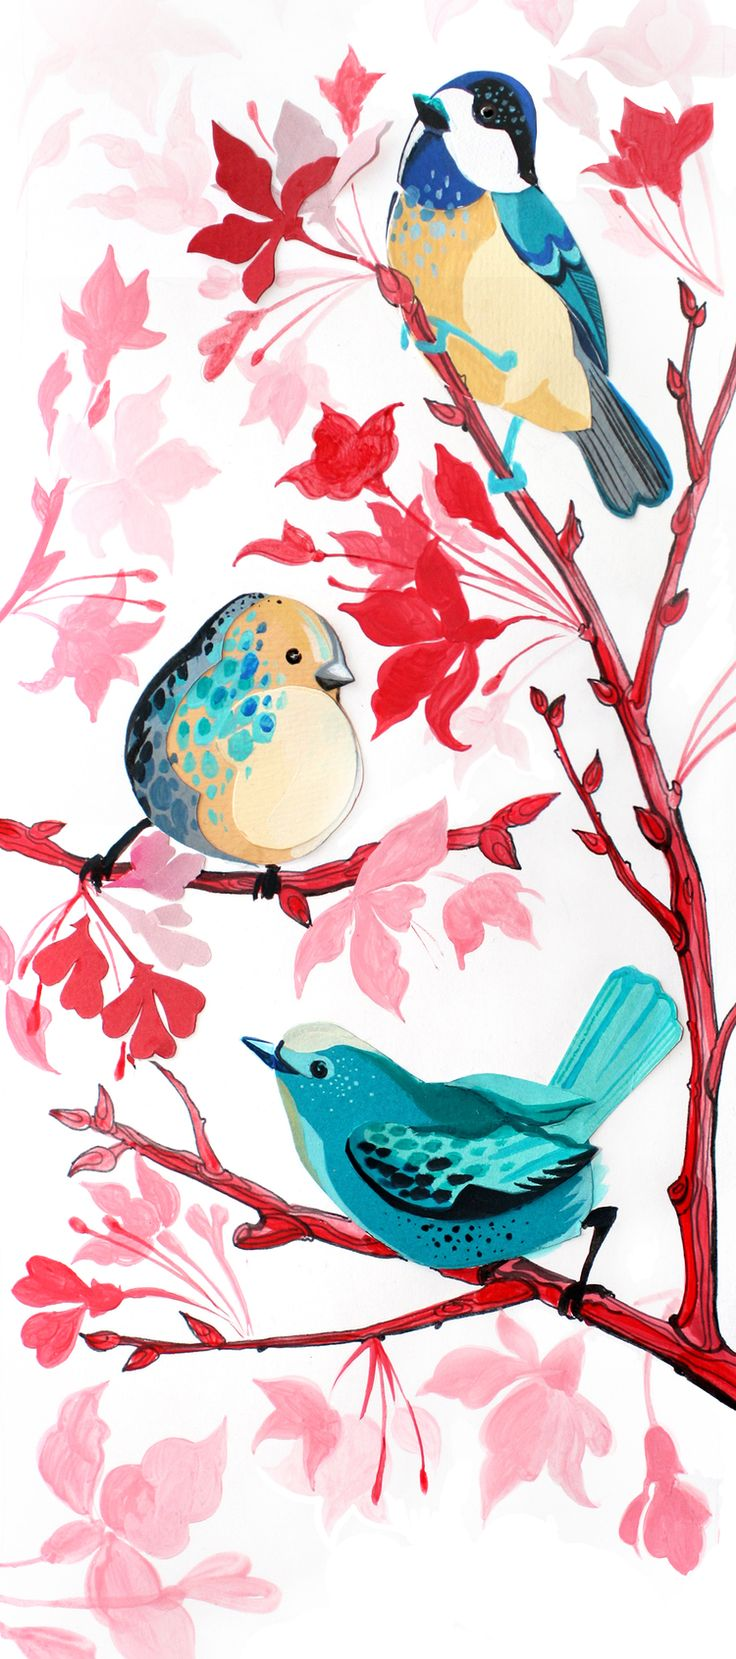 3 little birds im getting sumthing like this but the birds will b on a cherry blossom branch and my cuzin Fabi name will be carved in the branch and underneath its going say underneath every little thing is going to b alright...i miss my cuz